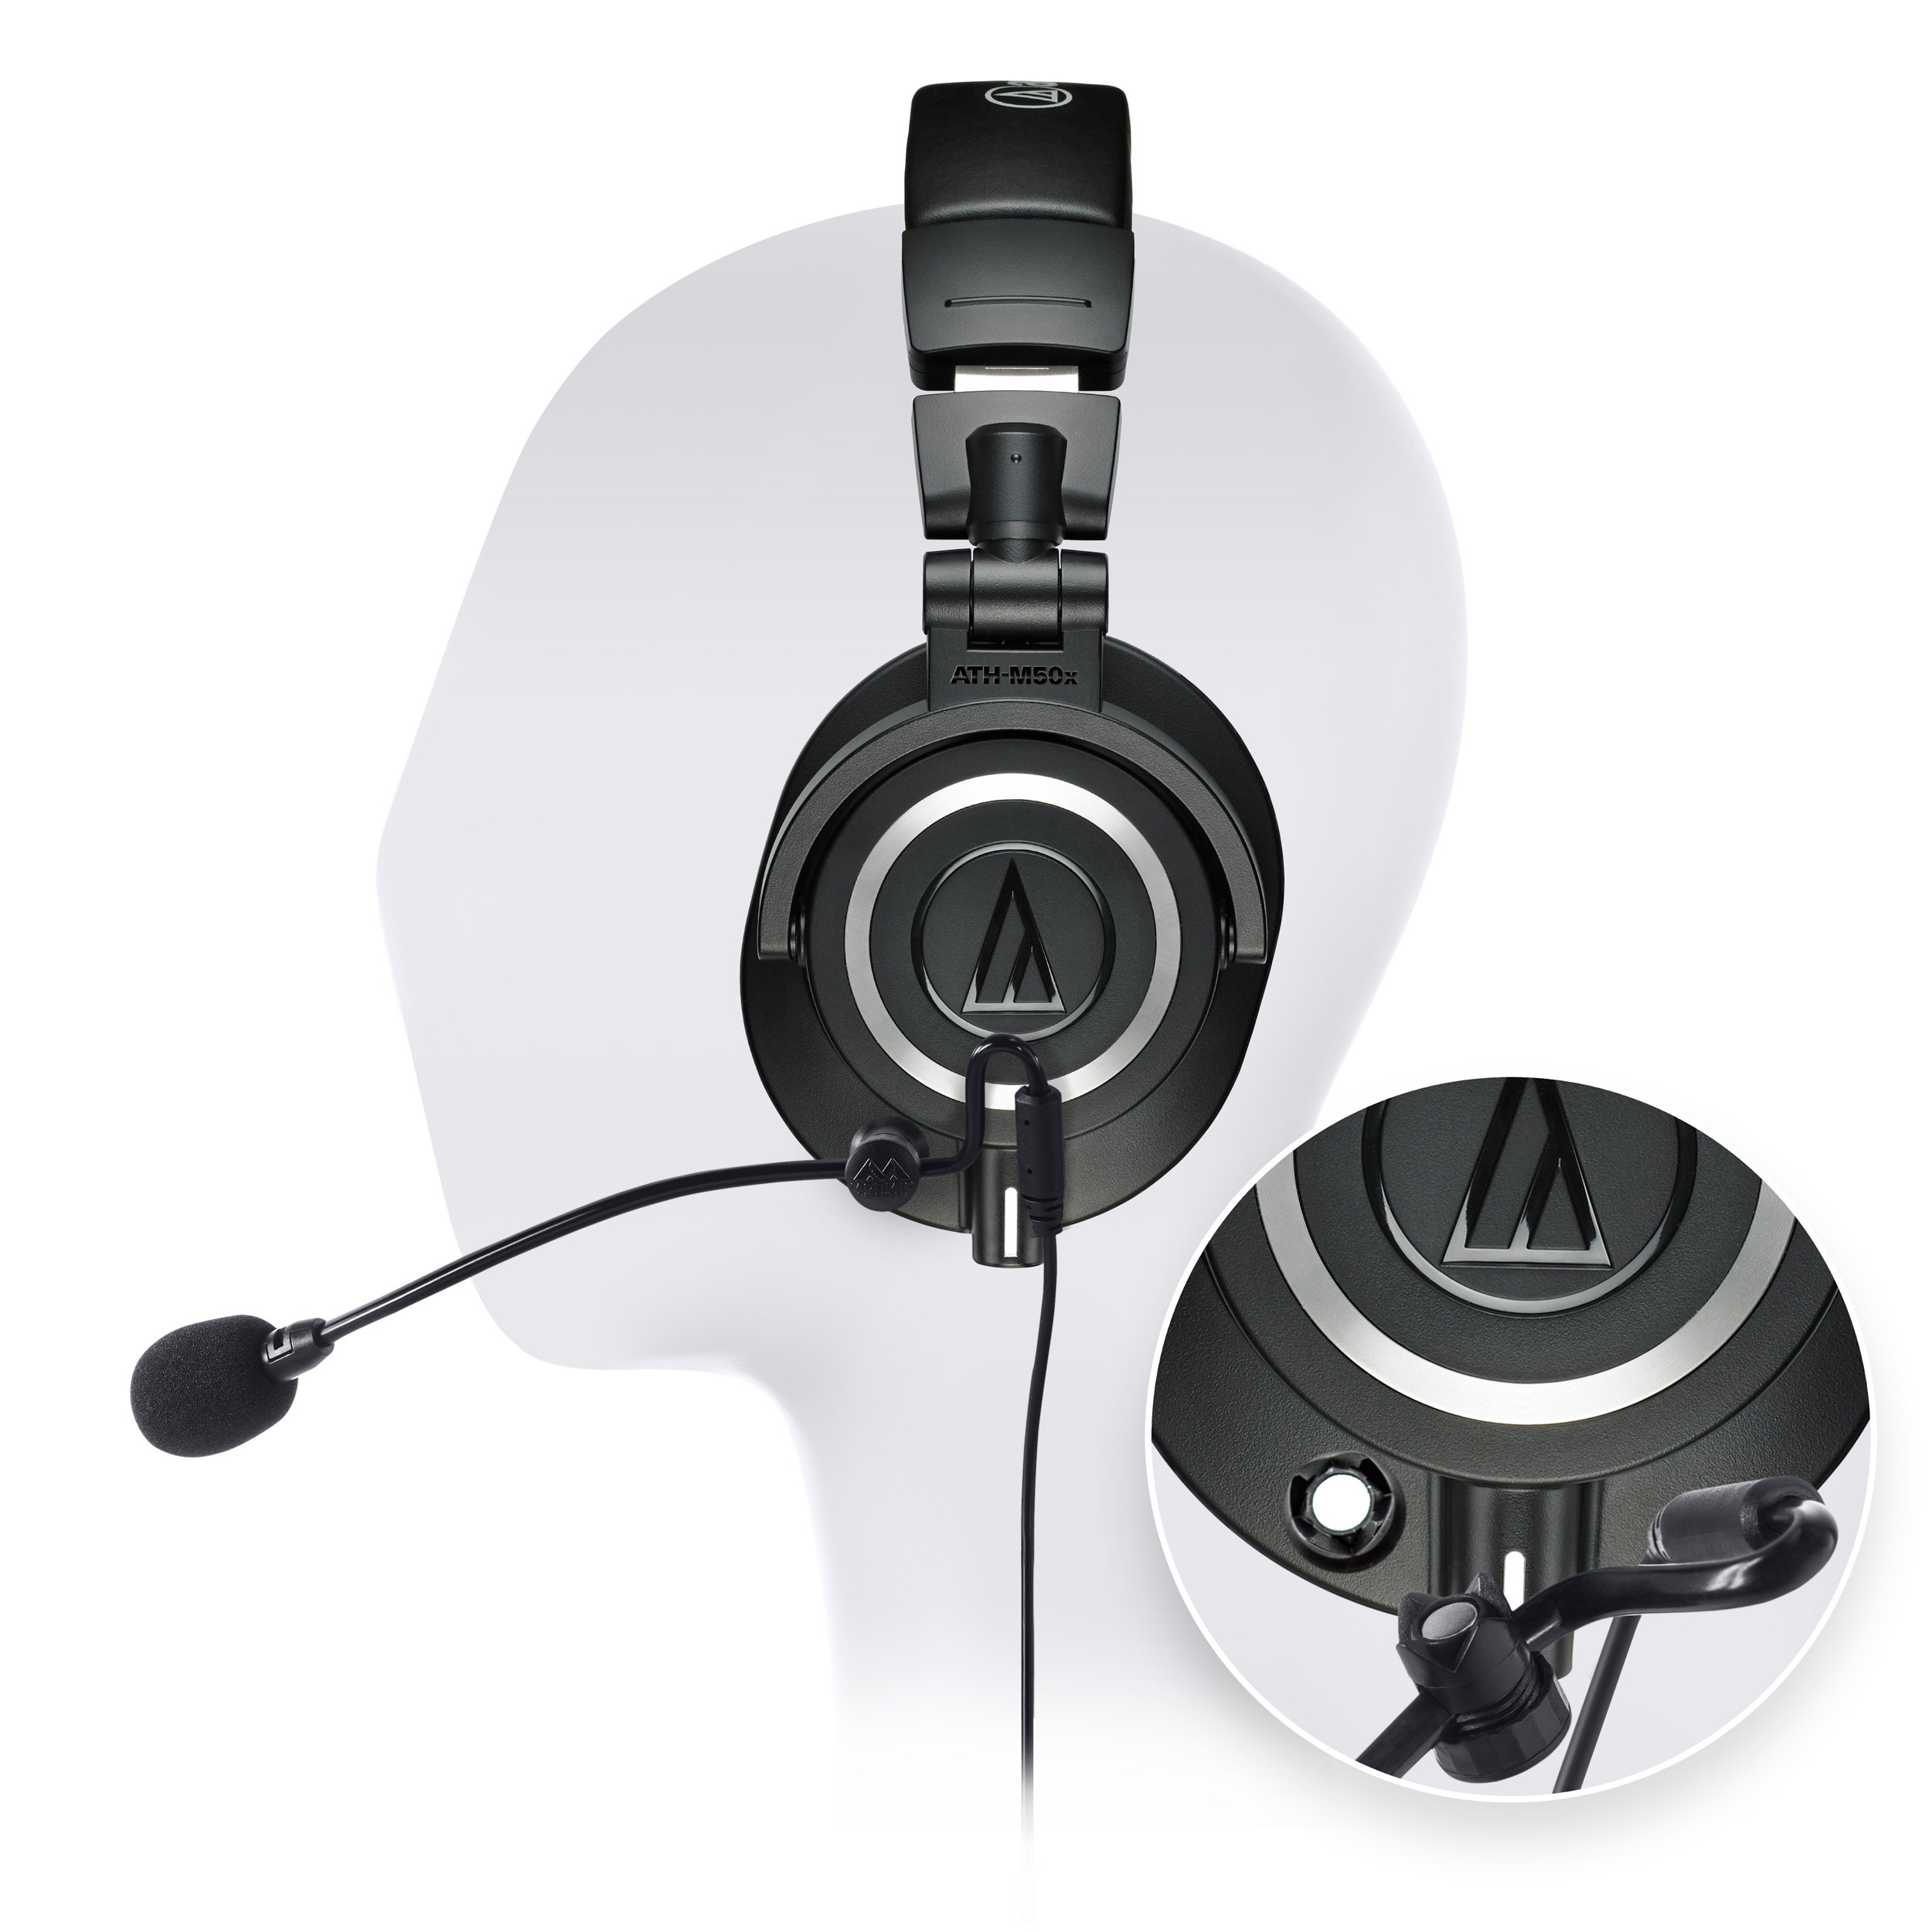 Audio-Technica ATH-M50x Professional Studio Headphone - INCLUDES - Antlion Audio ModMic Attachable Boom Microphone - Noise Cancelling w/ Mute Switch + Y Splitter - ULTIMATE GAMING BUNDLE by blucoil